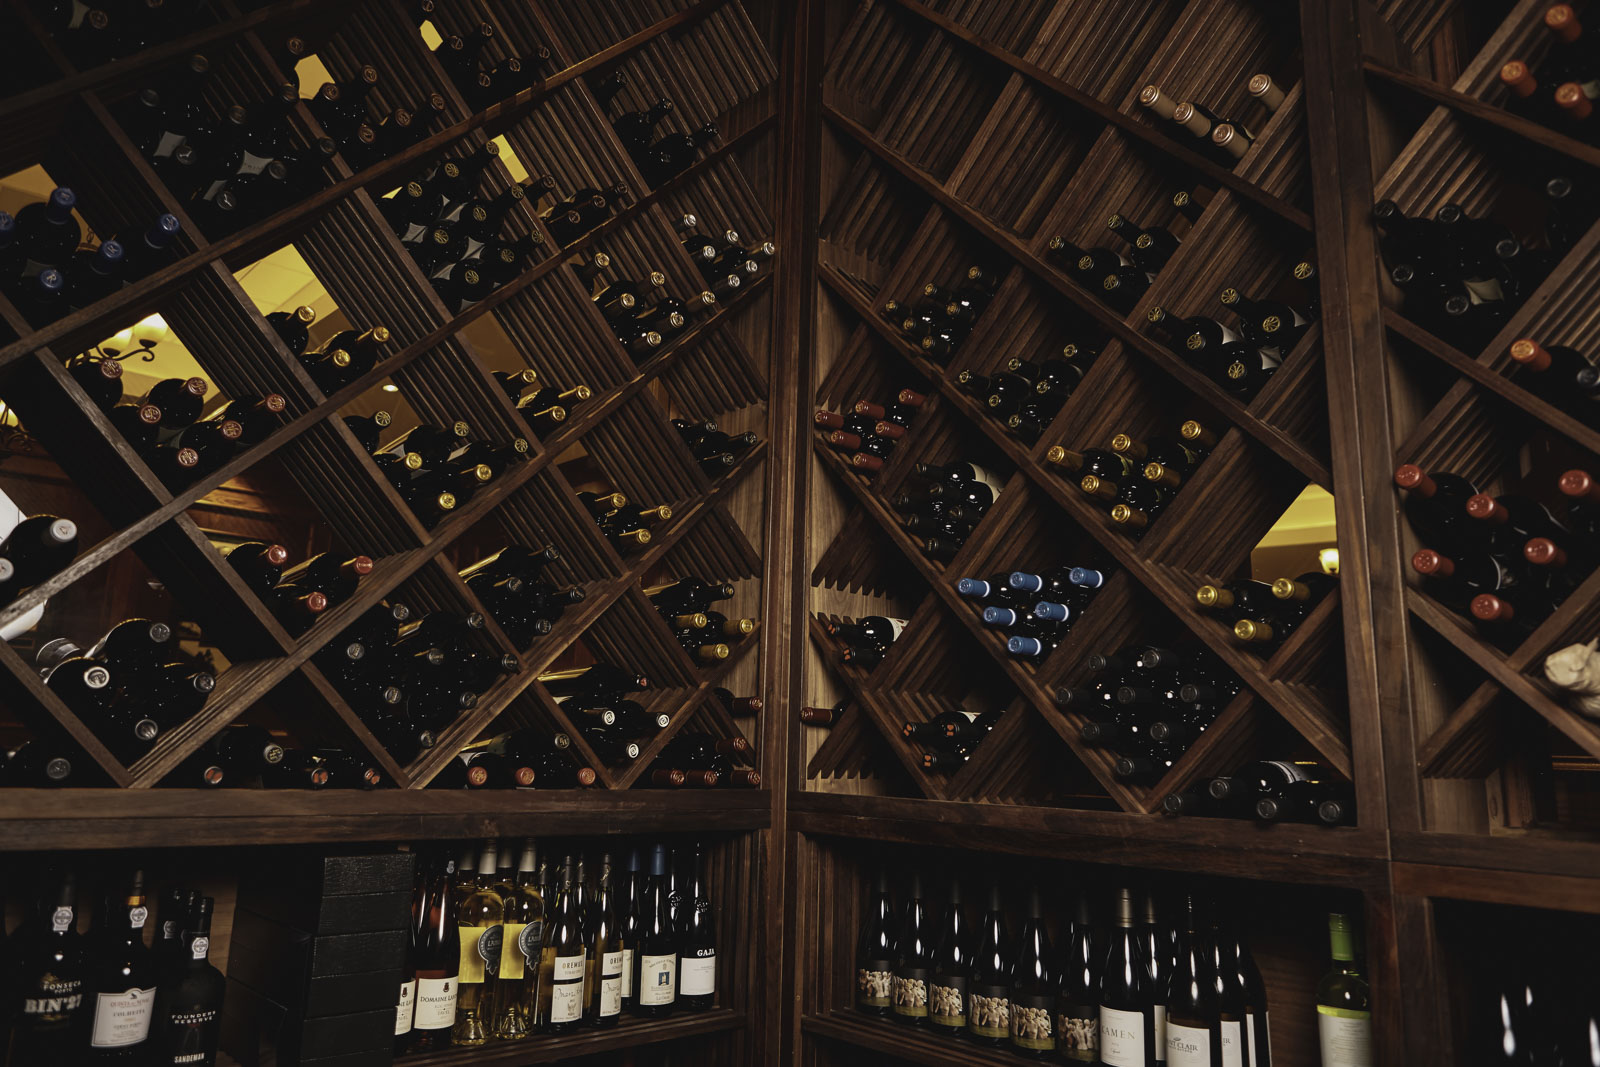 Bob's Steak & Chop House - Edinburg, TX (Wine Cellar)